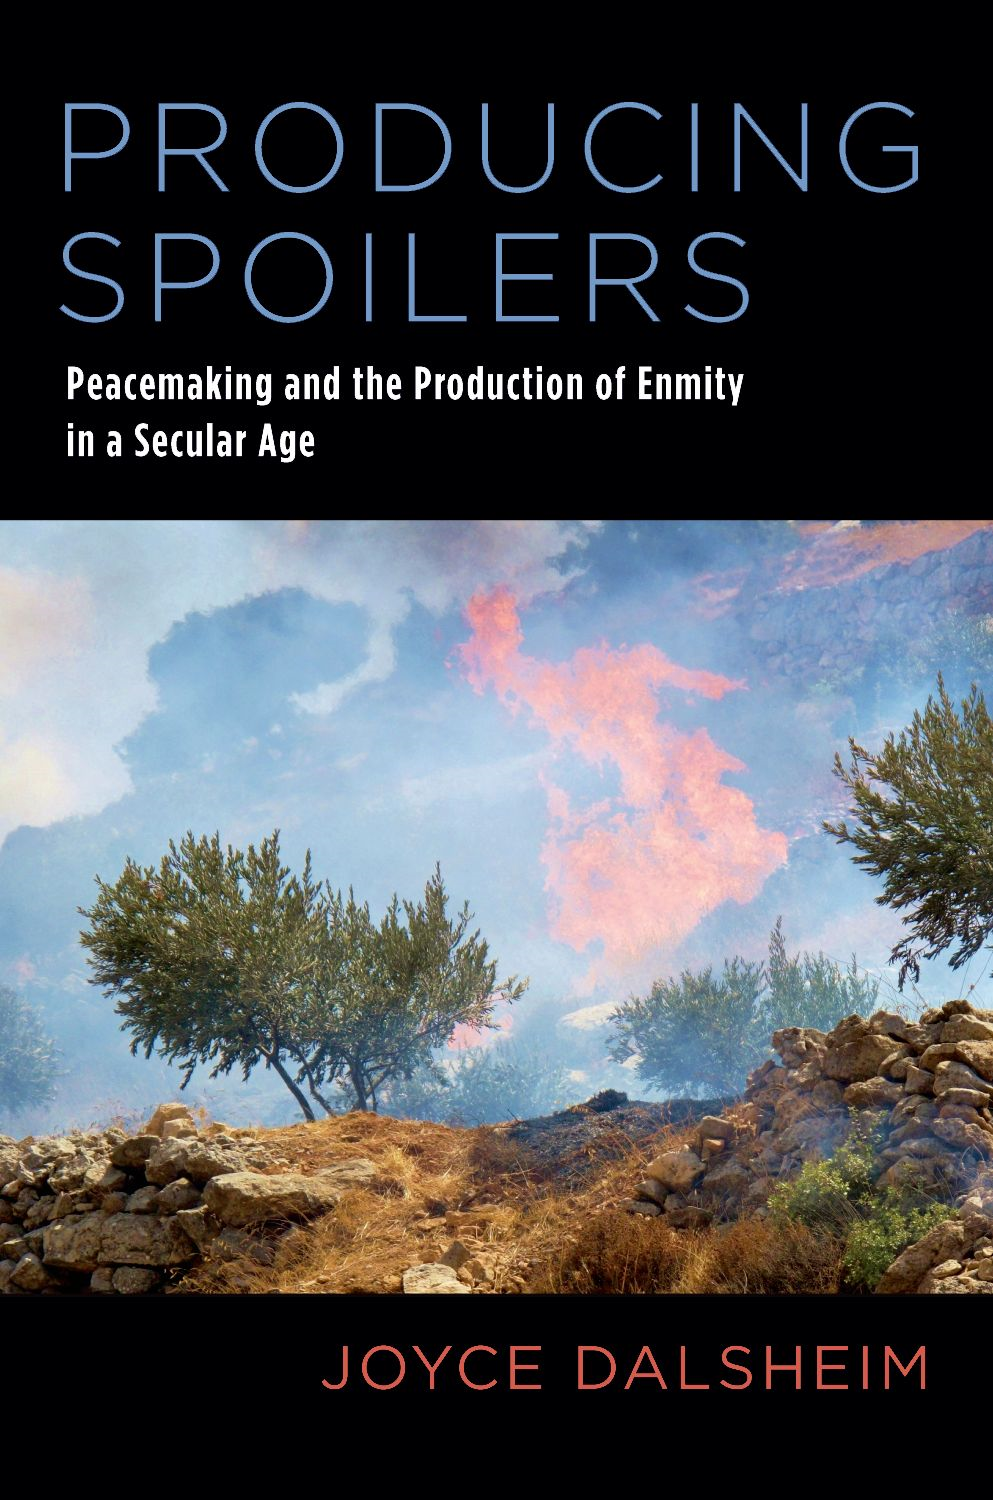 Producing Spoilers: Peacemaking and the Production of Enmity in a Secular Age